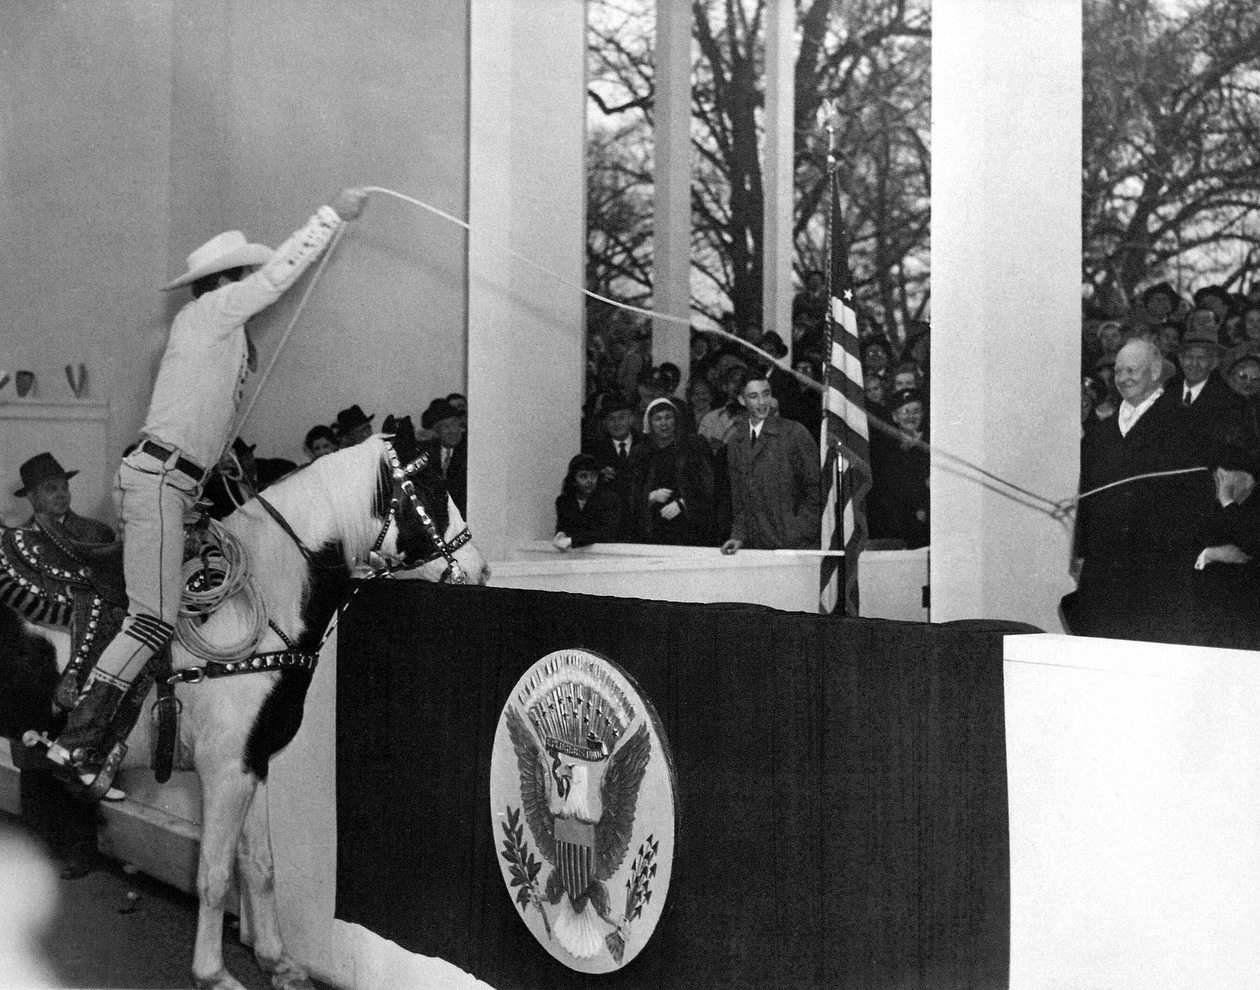 Television cowboy and roping legend Montie Montana lassoes President Eisenhower in the presidential reviewing box at the inaugural parade, 1953.